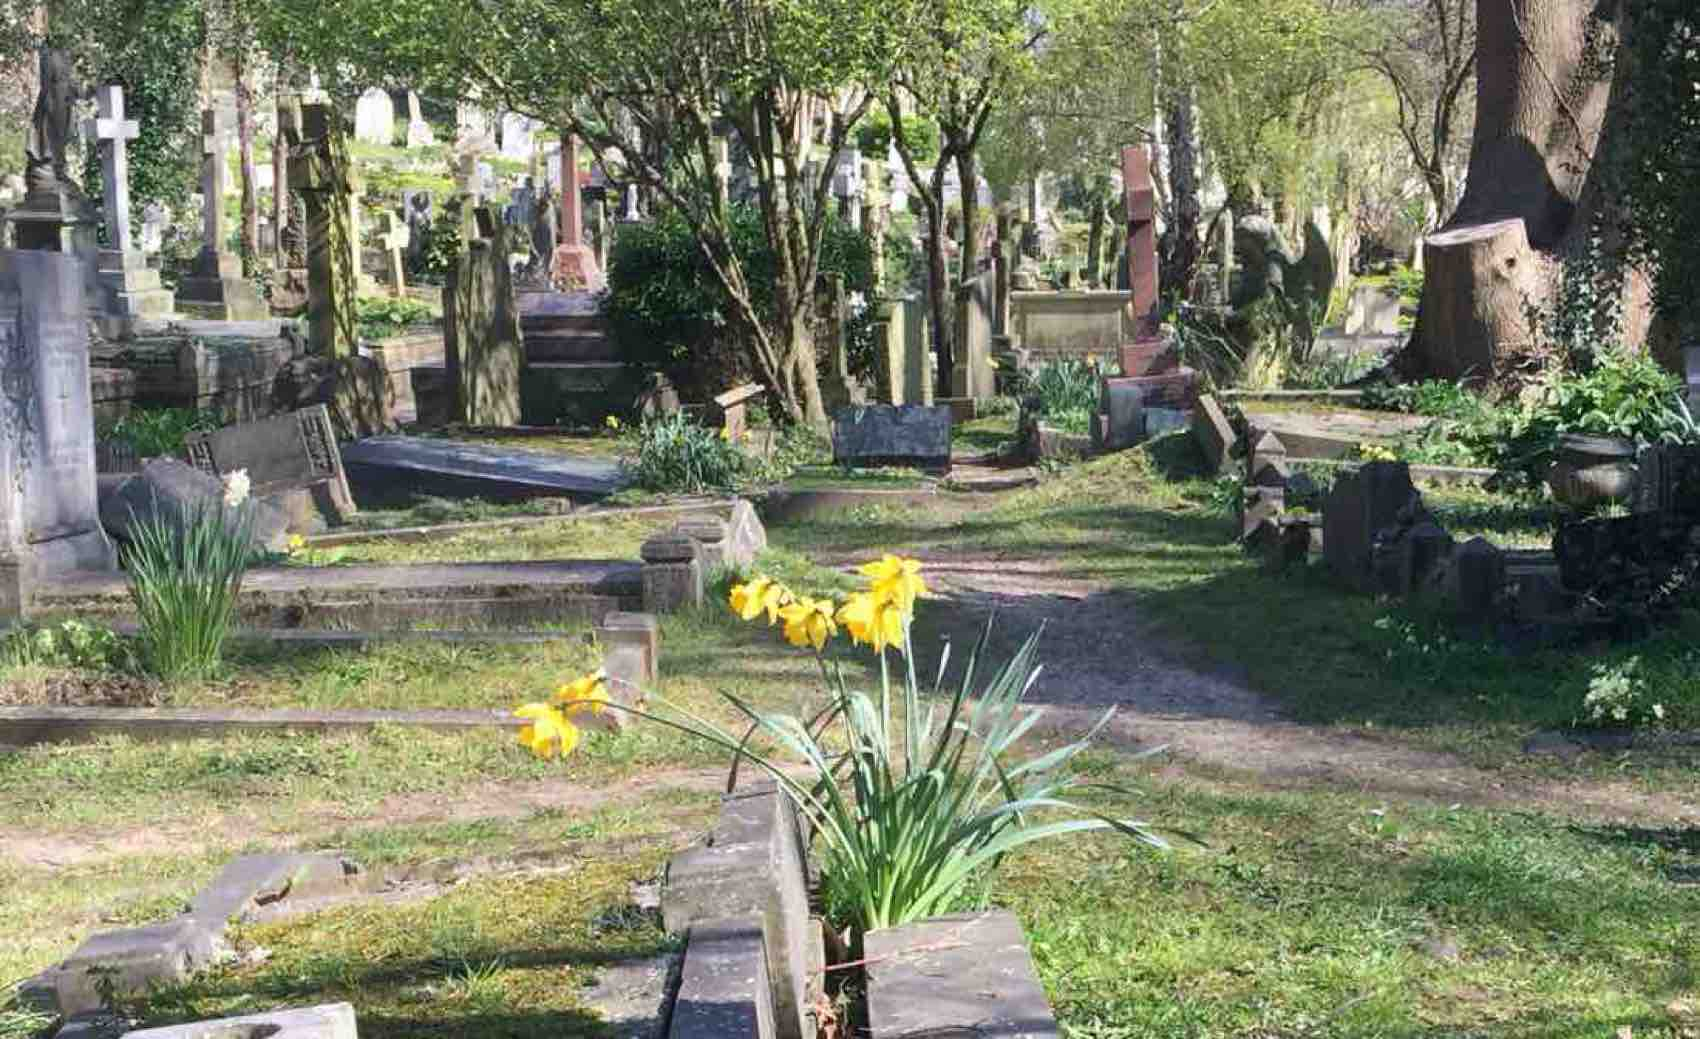 Highgate Cemetery, home to many well-known residents. The most famous of all is Karl Marx